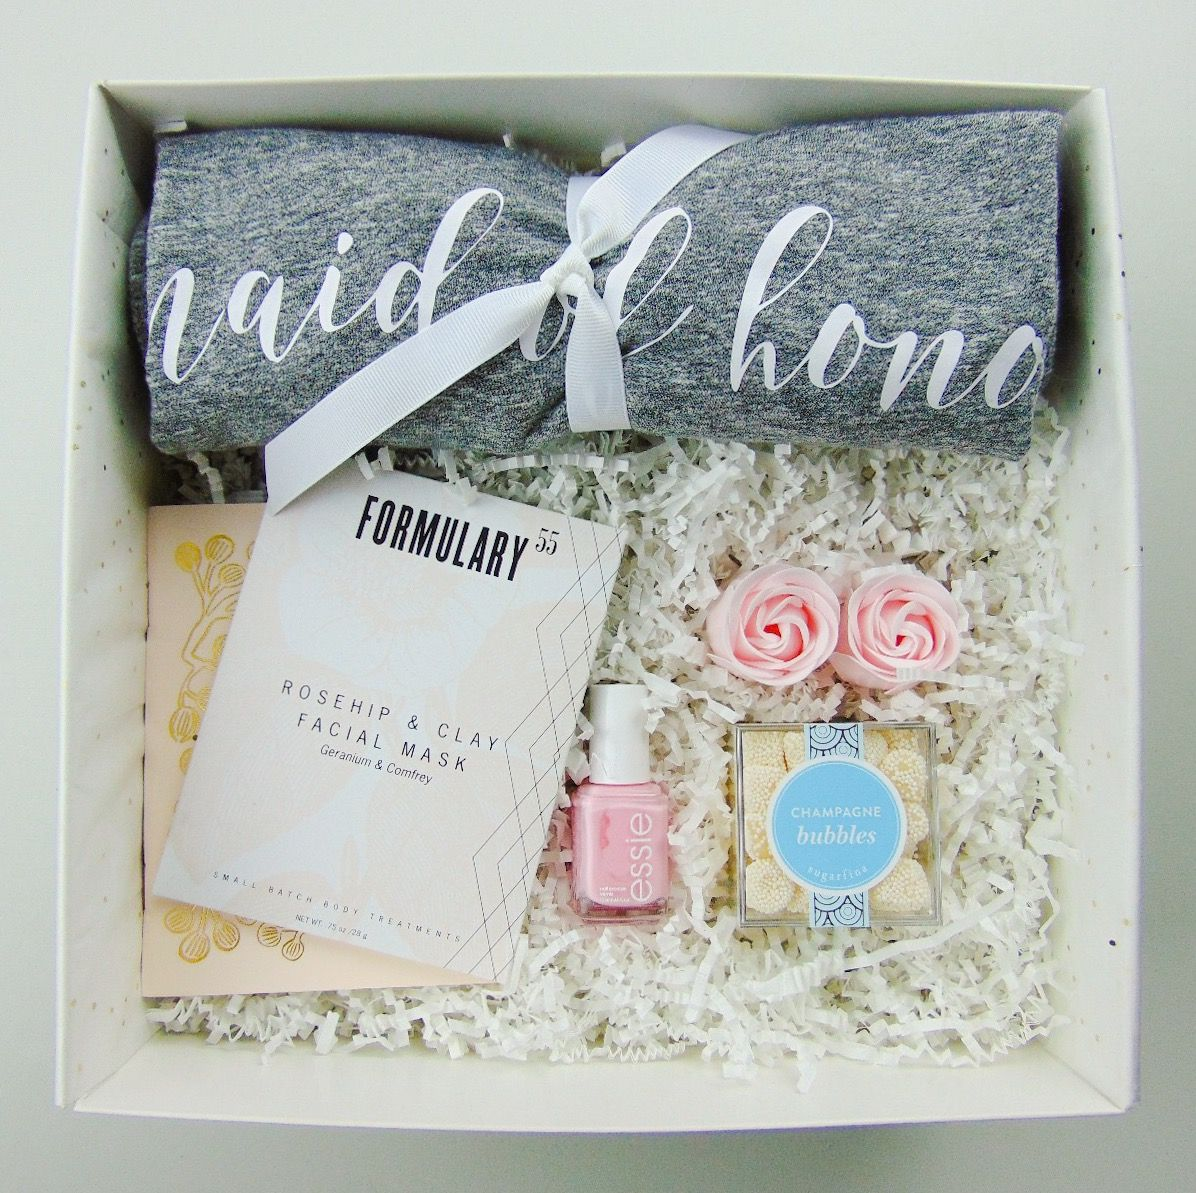 Maid of Honor gift set, maid of honor proposal, maid of honor gift, bride tribe, bridal party#maidofhonorproposal #bemymaidofhonor #maidofhonor